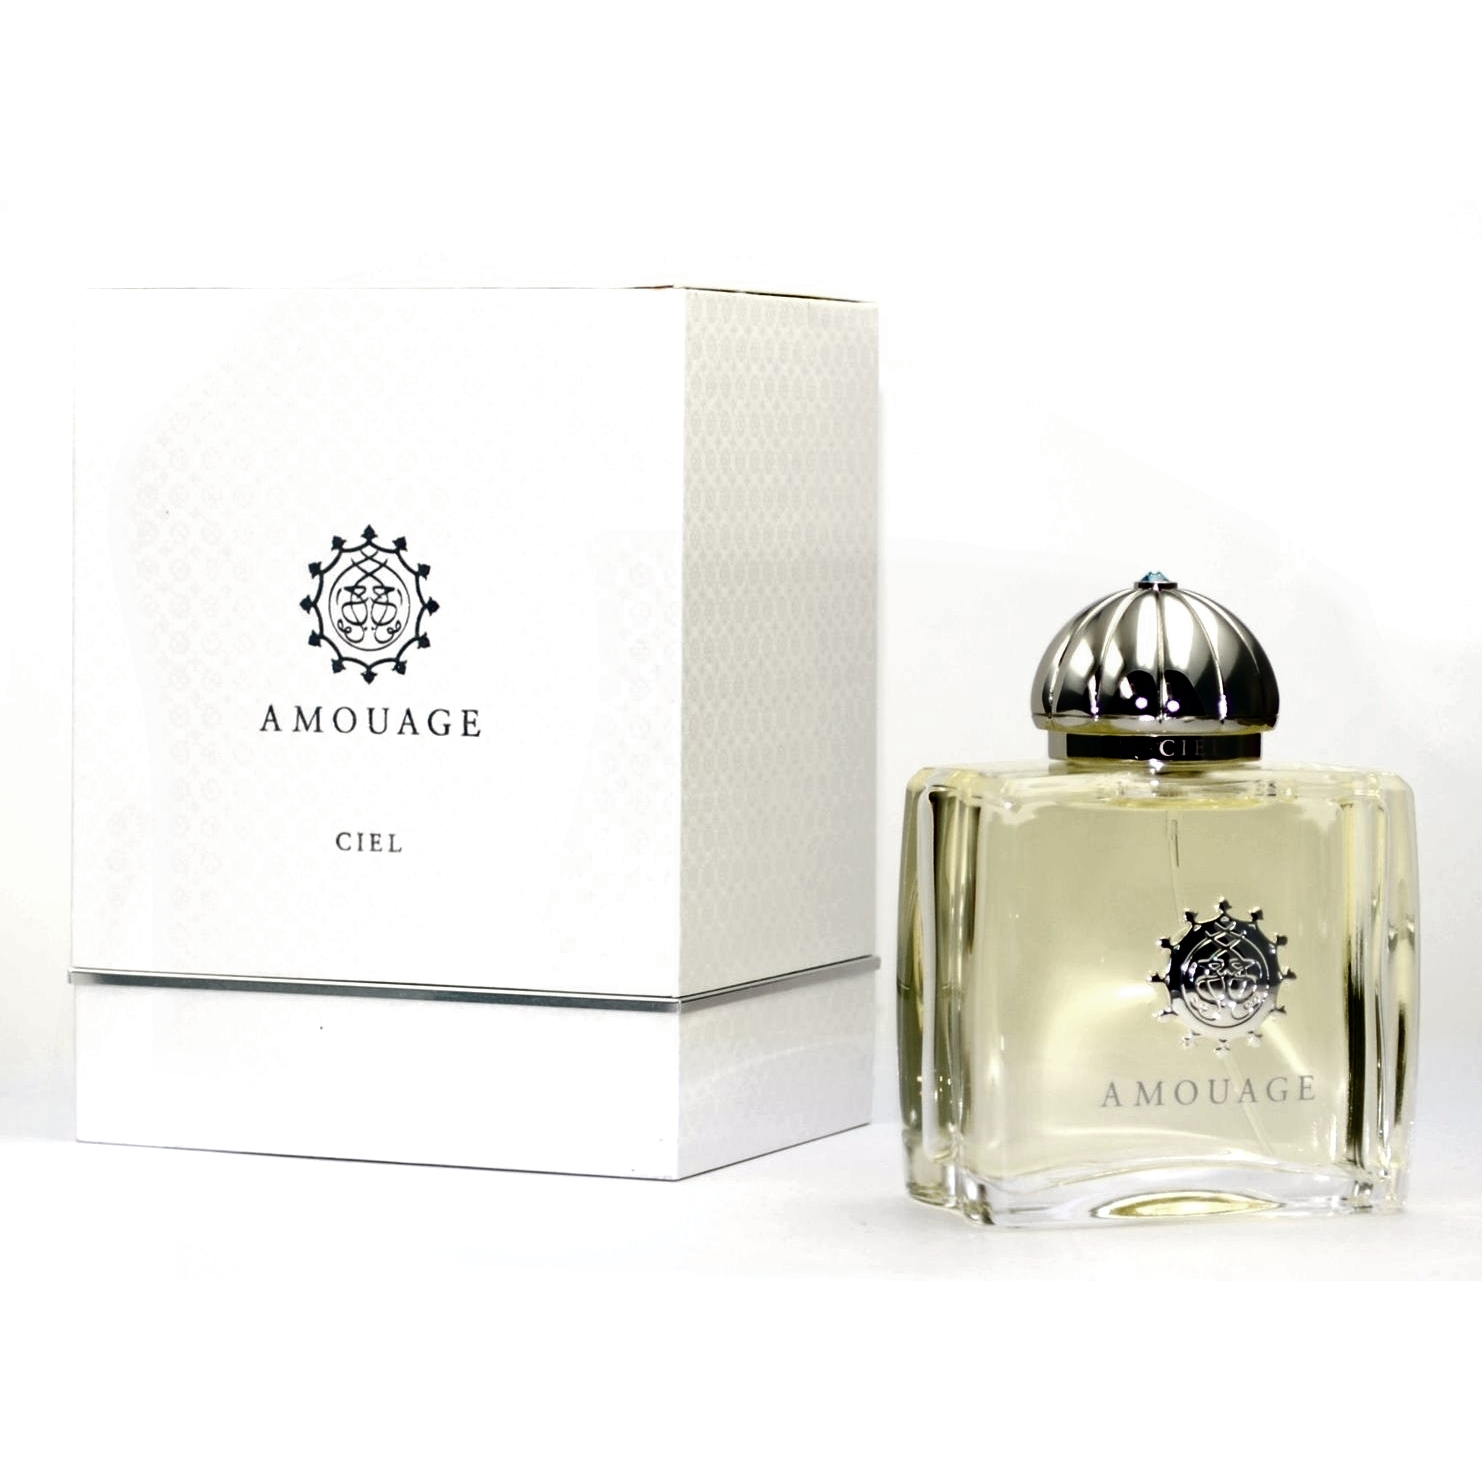 http://unifive.ru/uploads/image/file/15377/Amouage_Ciel_ladies1.jpg